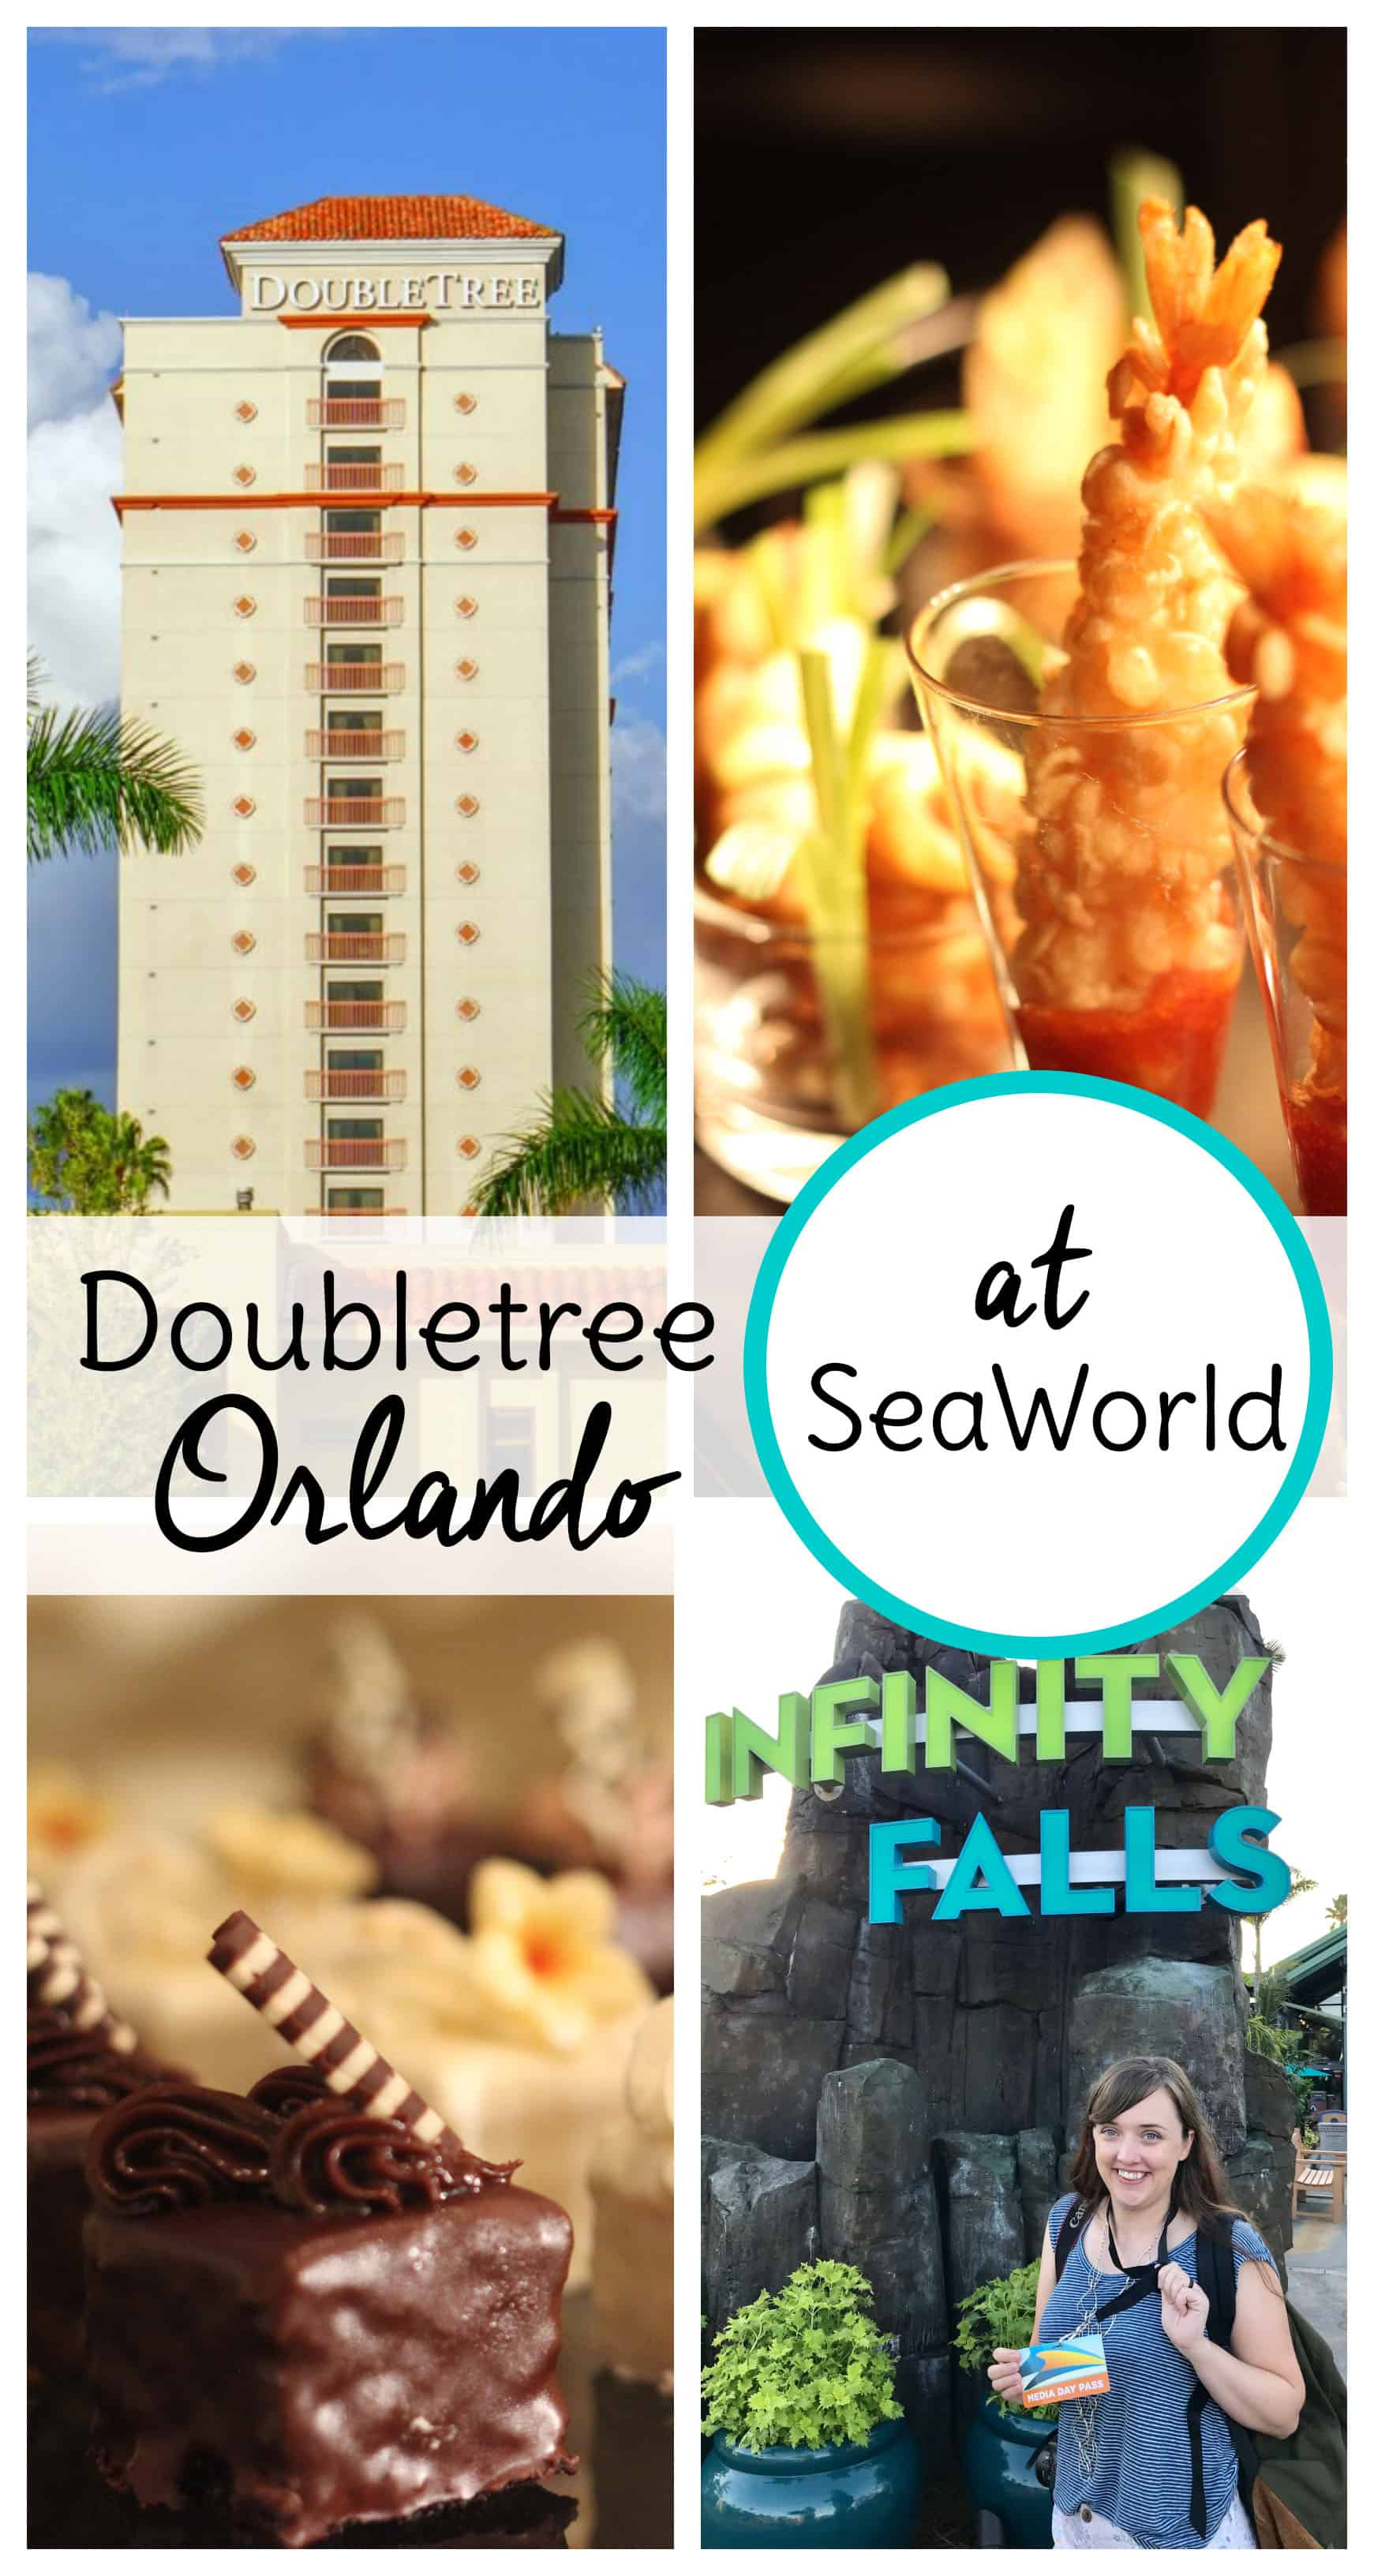 Check out this guide to Doubletree Orlando at SeaWorld as you're doing your SeaWorld Orlando planning. You'll find Orlando tips, videos, and ideas! #familytravel #seaworldorlando